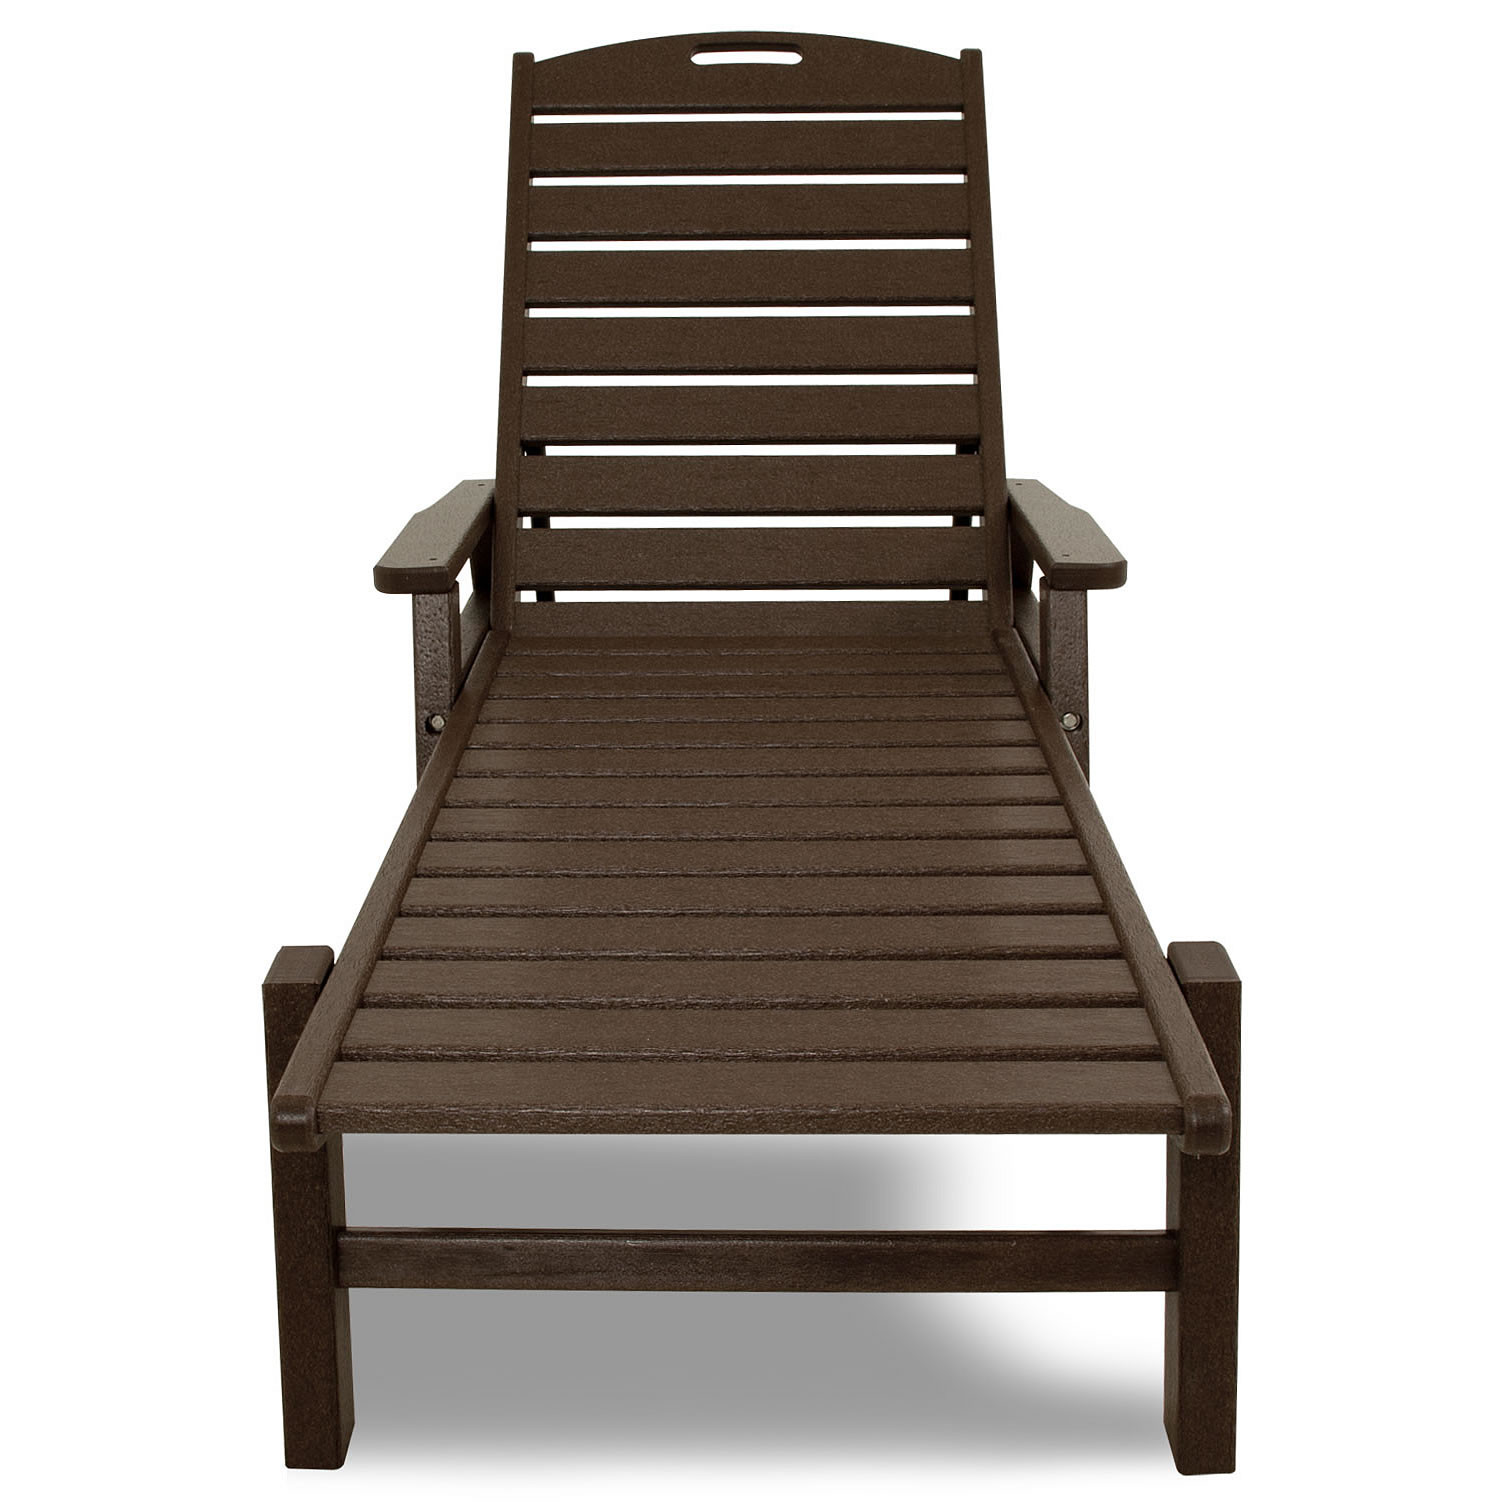 Polywood Nautical Chaise Lounge Chaise Lounge Chairs